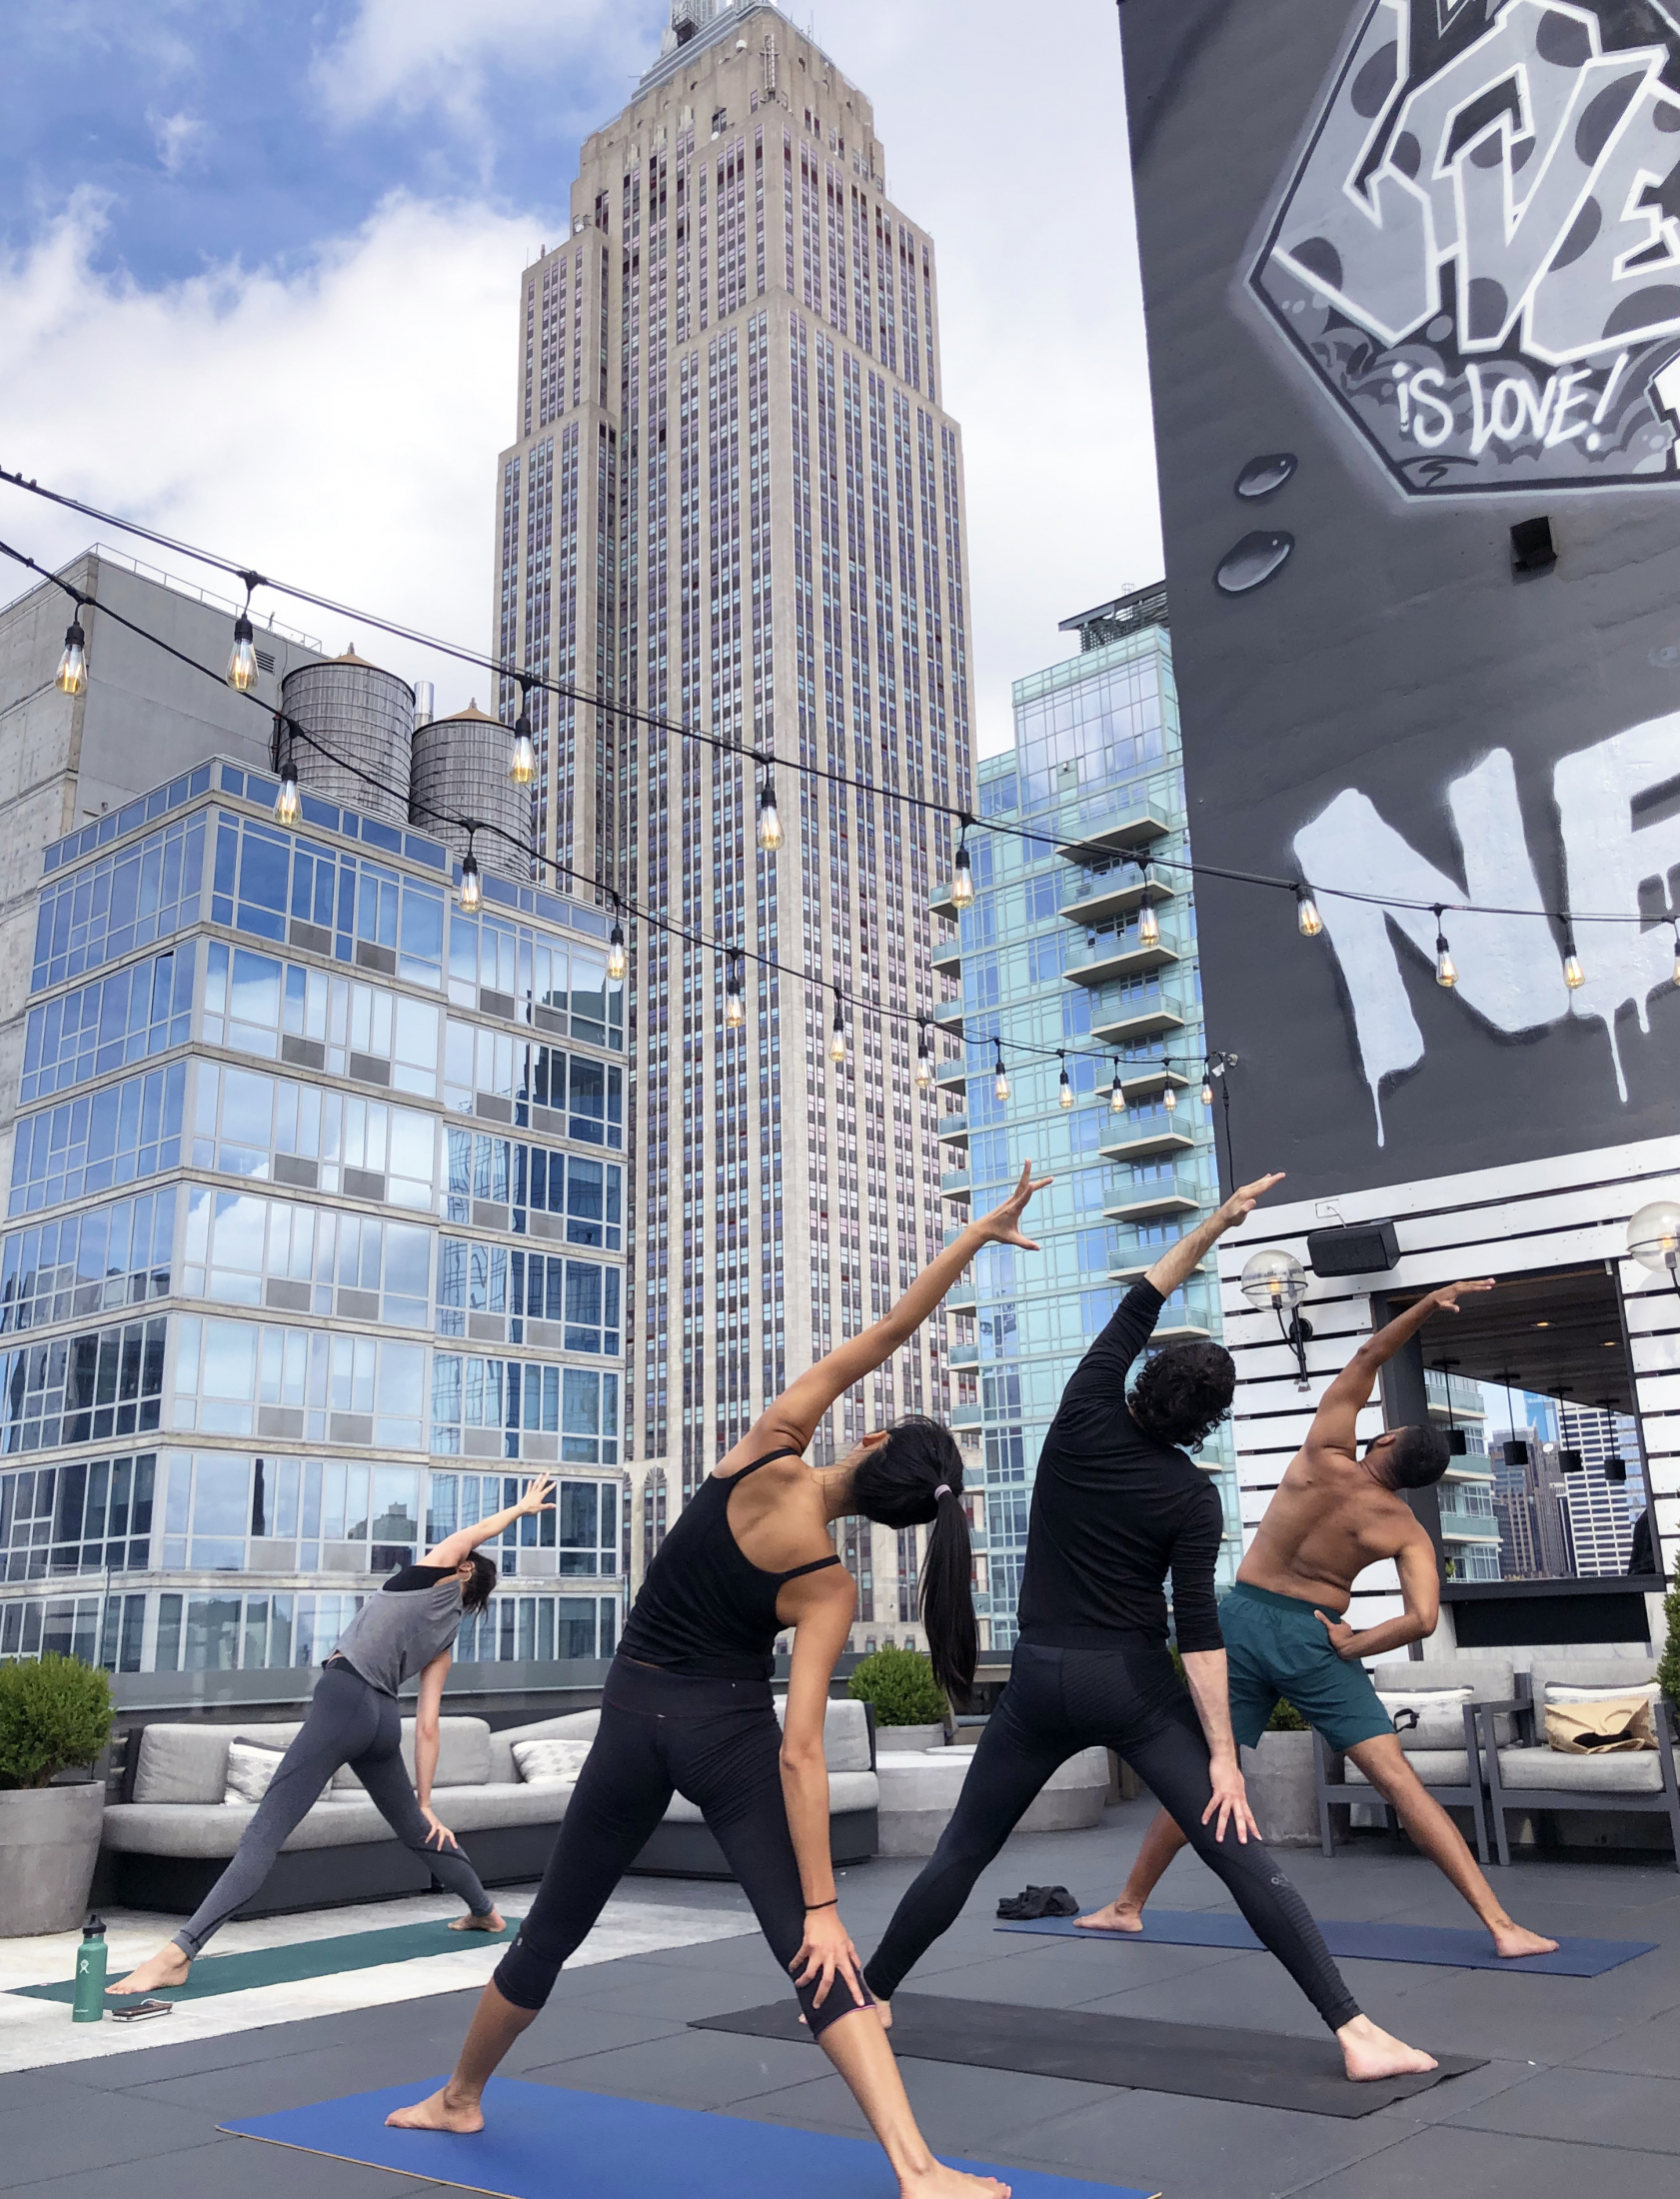 Outdoor rooftop yoga at Arlo NoMad with people standing and stretching on yoga mats in front of the empire state building